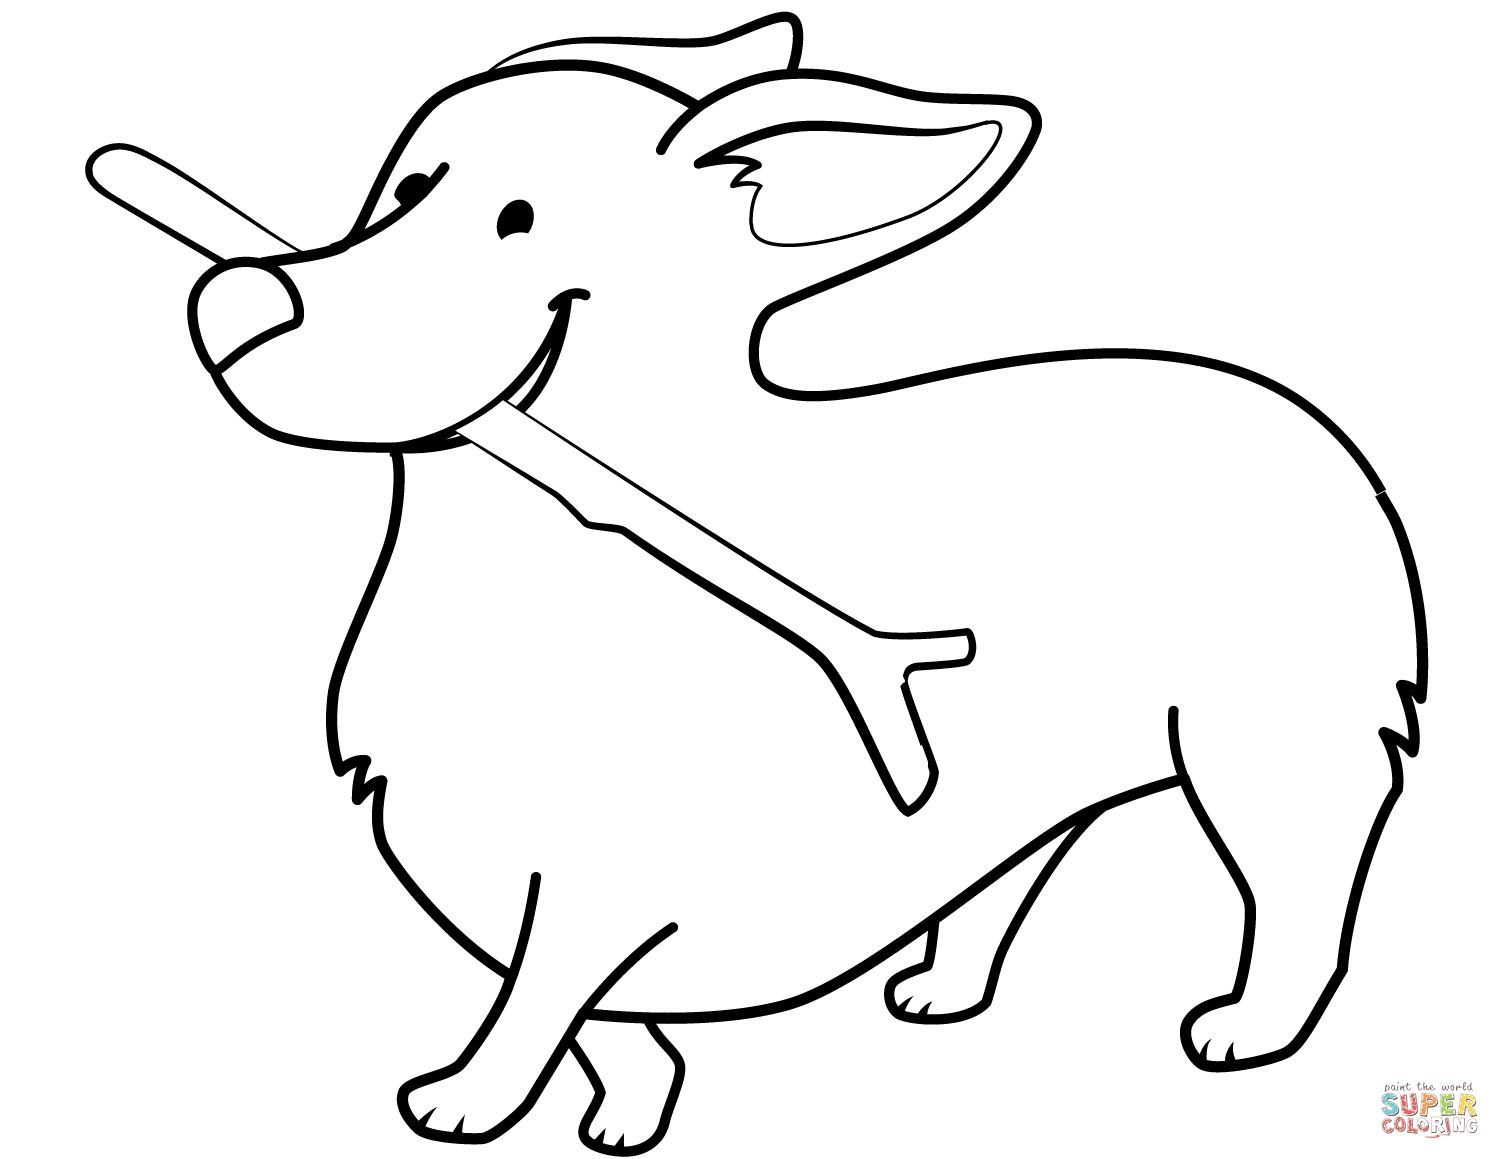 Funny Corgi Holding Stick Coloring Pages Download Dog Coloring Page Corgi Funny Animal Coloring Pages